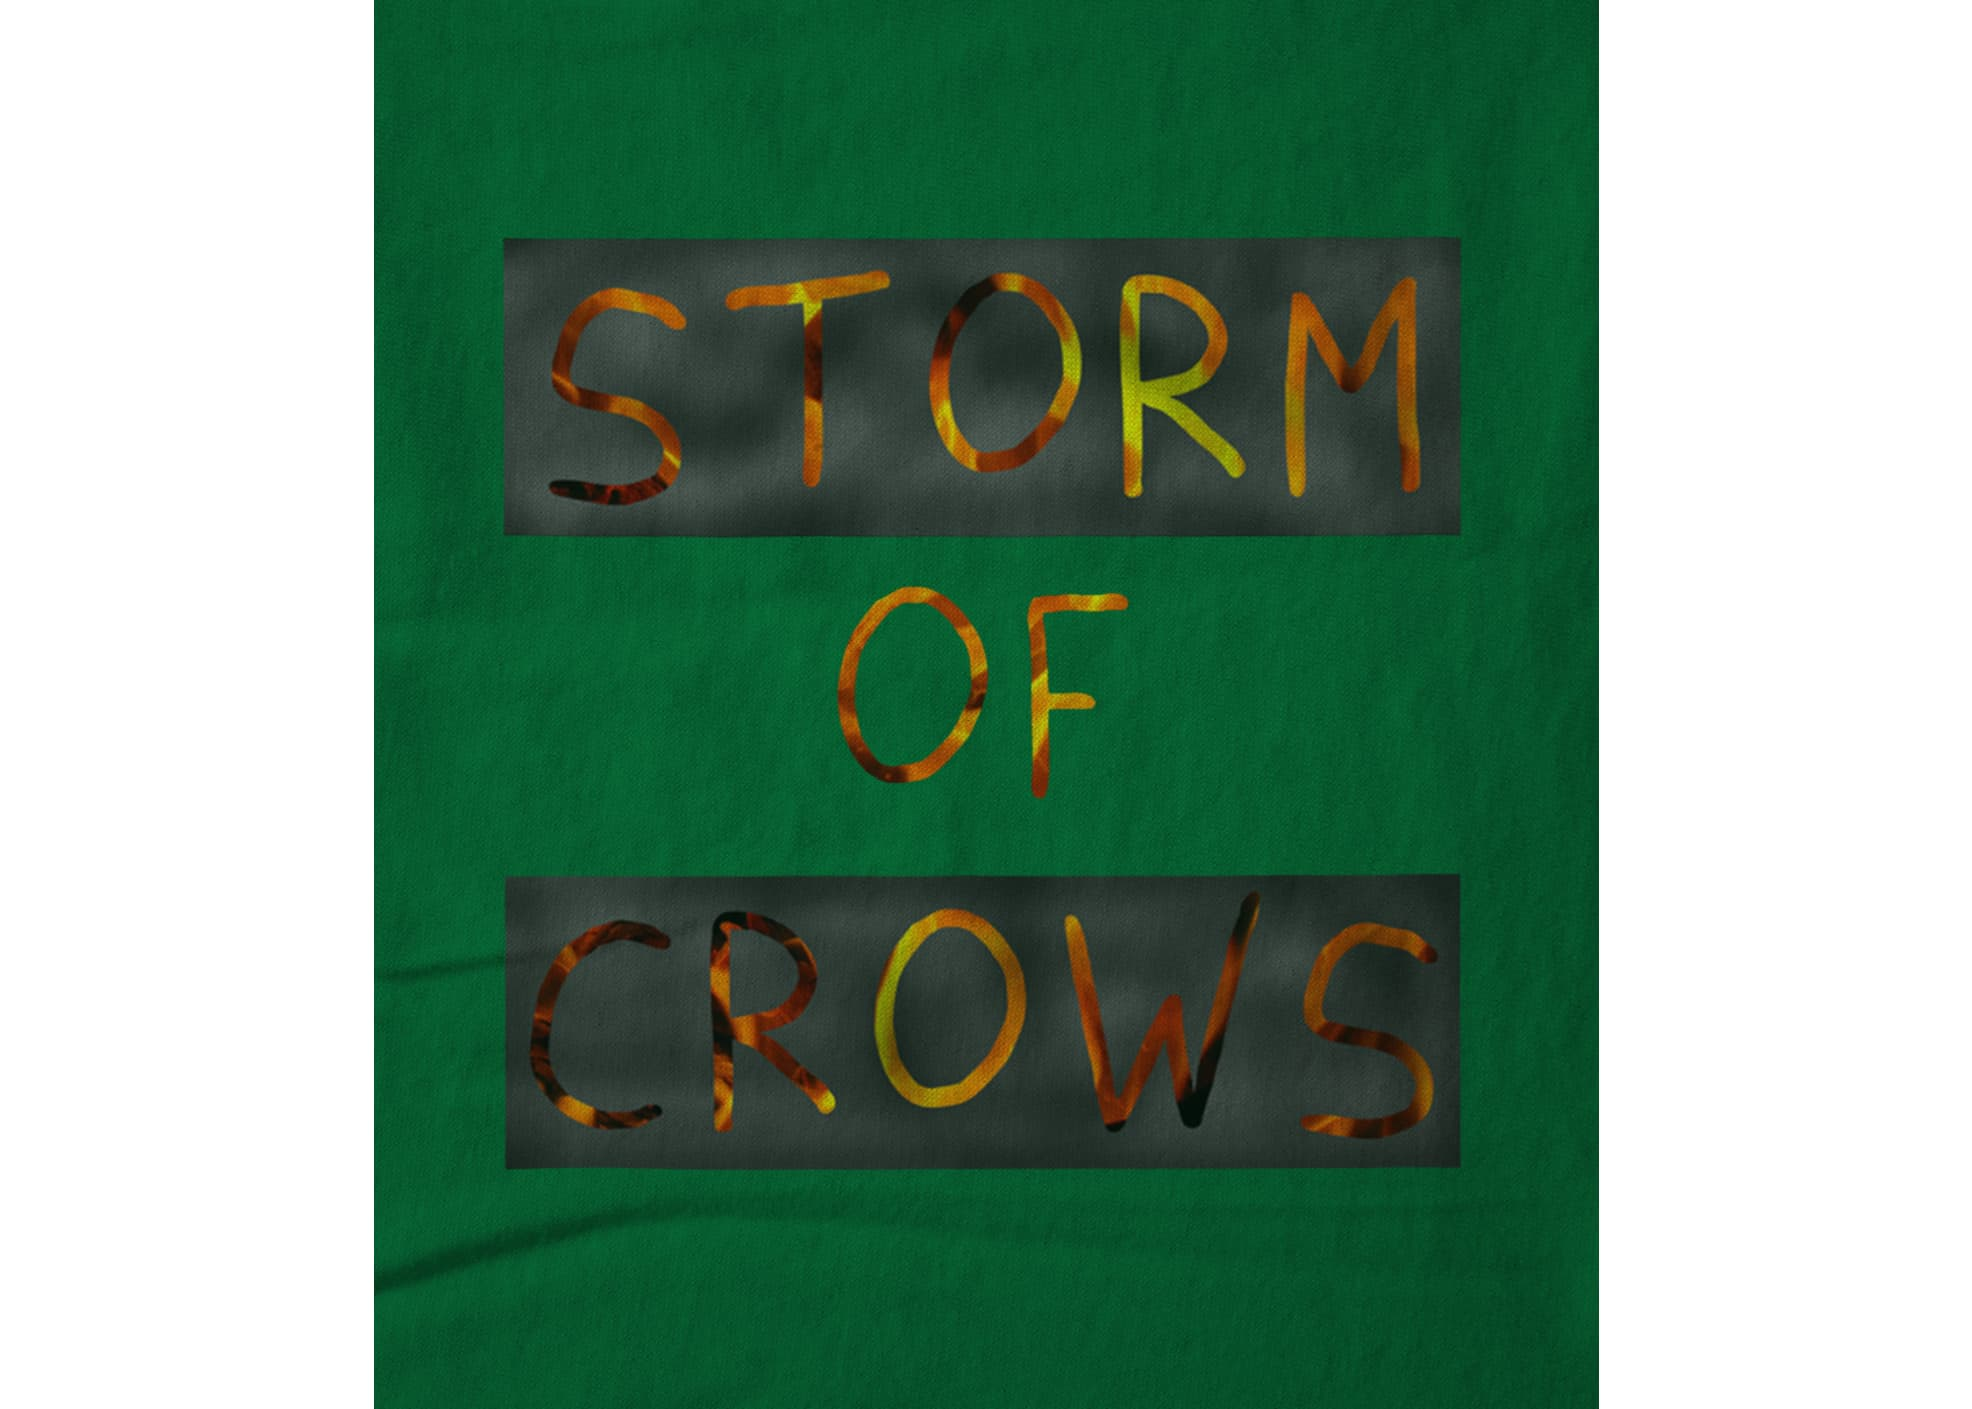 Storm of crows fire logo 1616596855